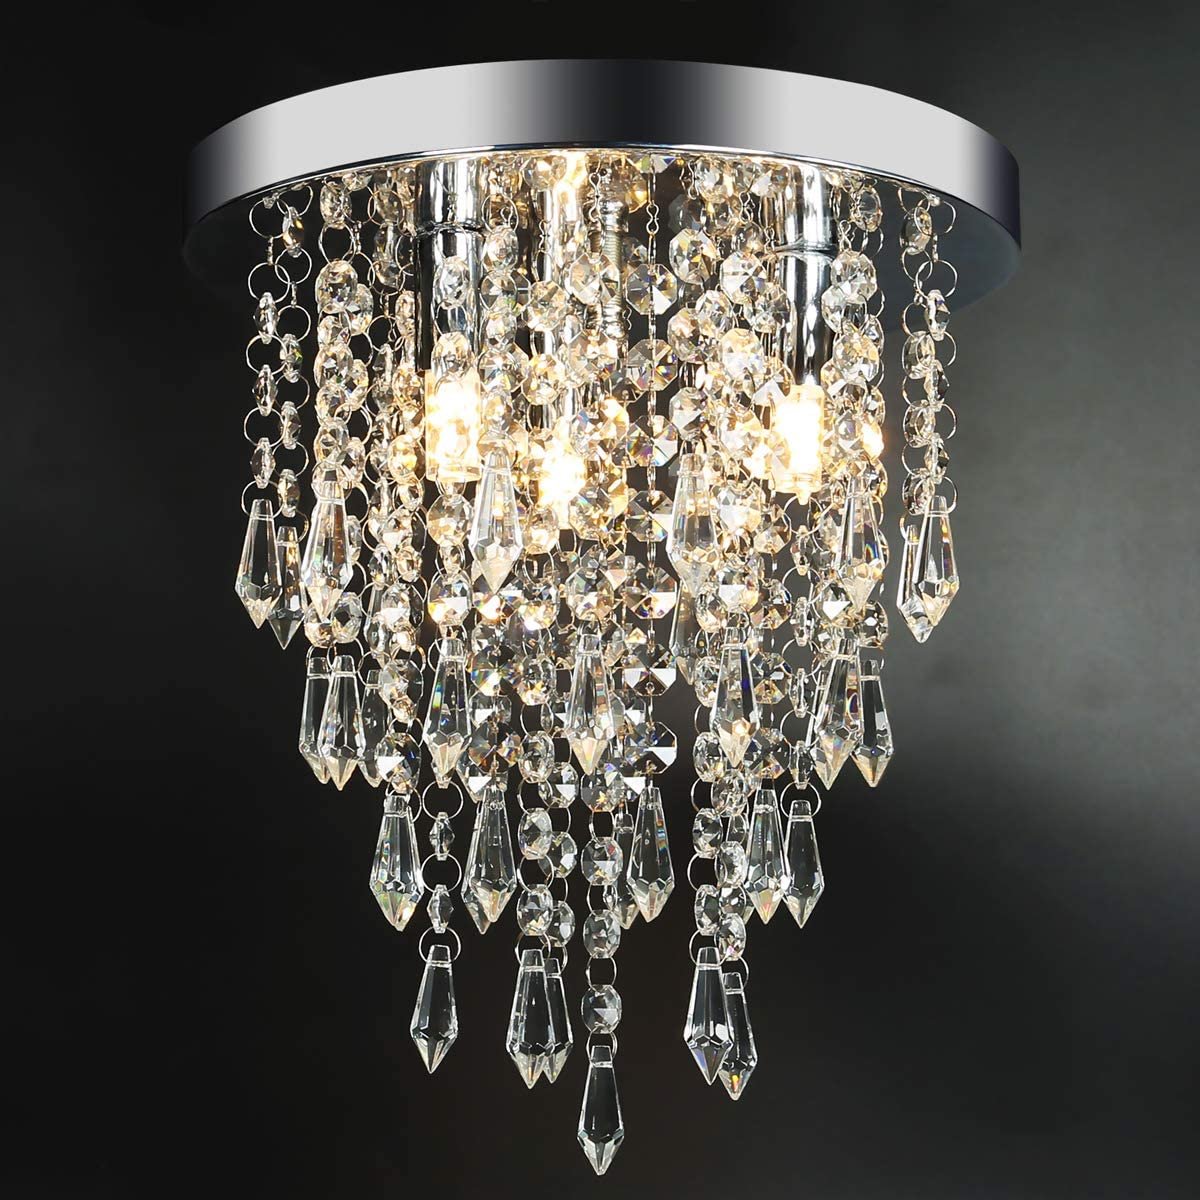 3 Lights Mini Crystal Flushmount Chandelier Fixture Hong-in Crystal Ceiling Lamp, H10.4 X W9.84 , Elegant Modern Flush Mount Ceiling Light for Bedroom, Hallway, Bar, Living Room, Dining Room, Chrome